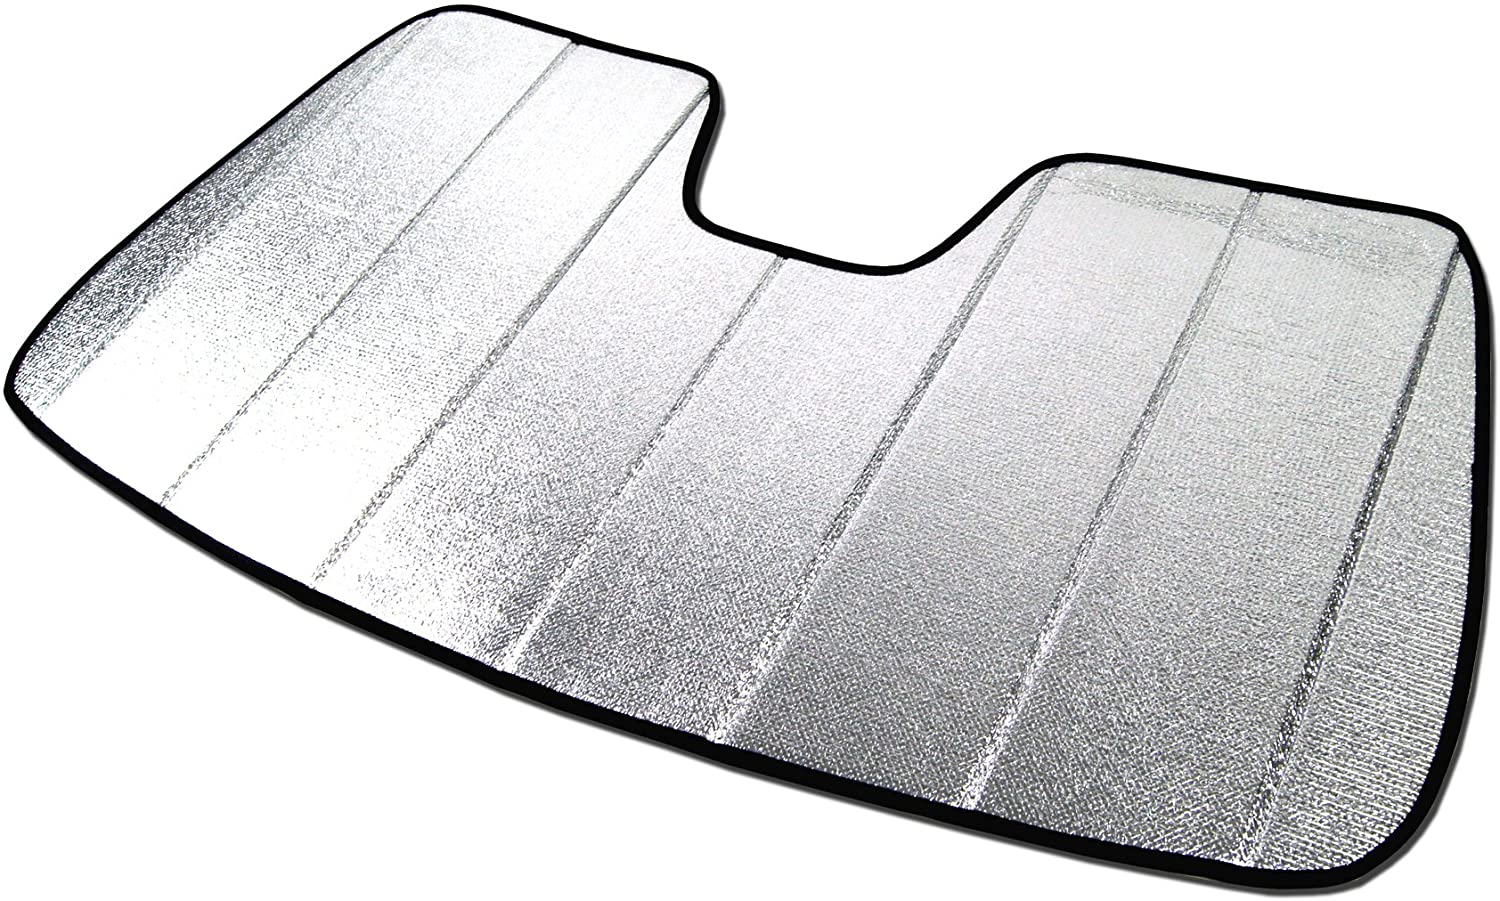 Tuningpros SS-474 1-pc Set Silver Grey Fit Custom Shade Sun Ranking 25% OFF integrated 1st place Ca